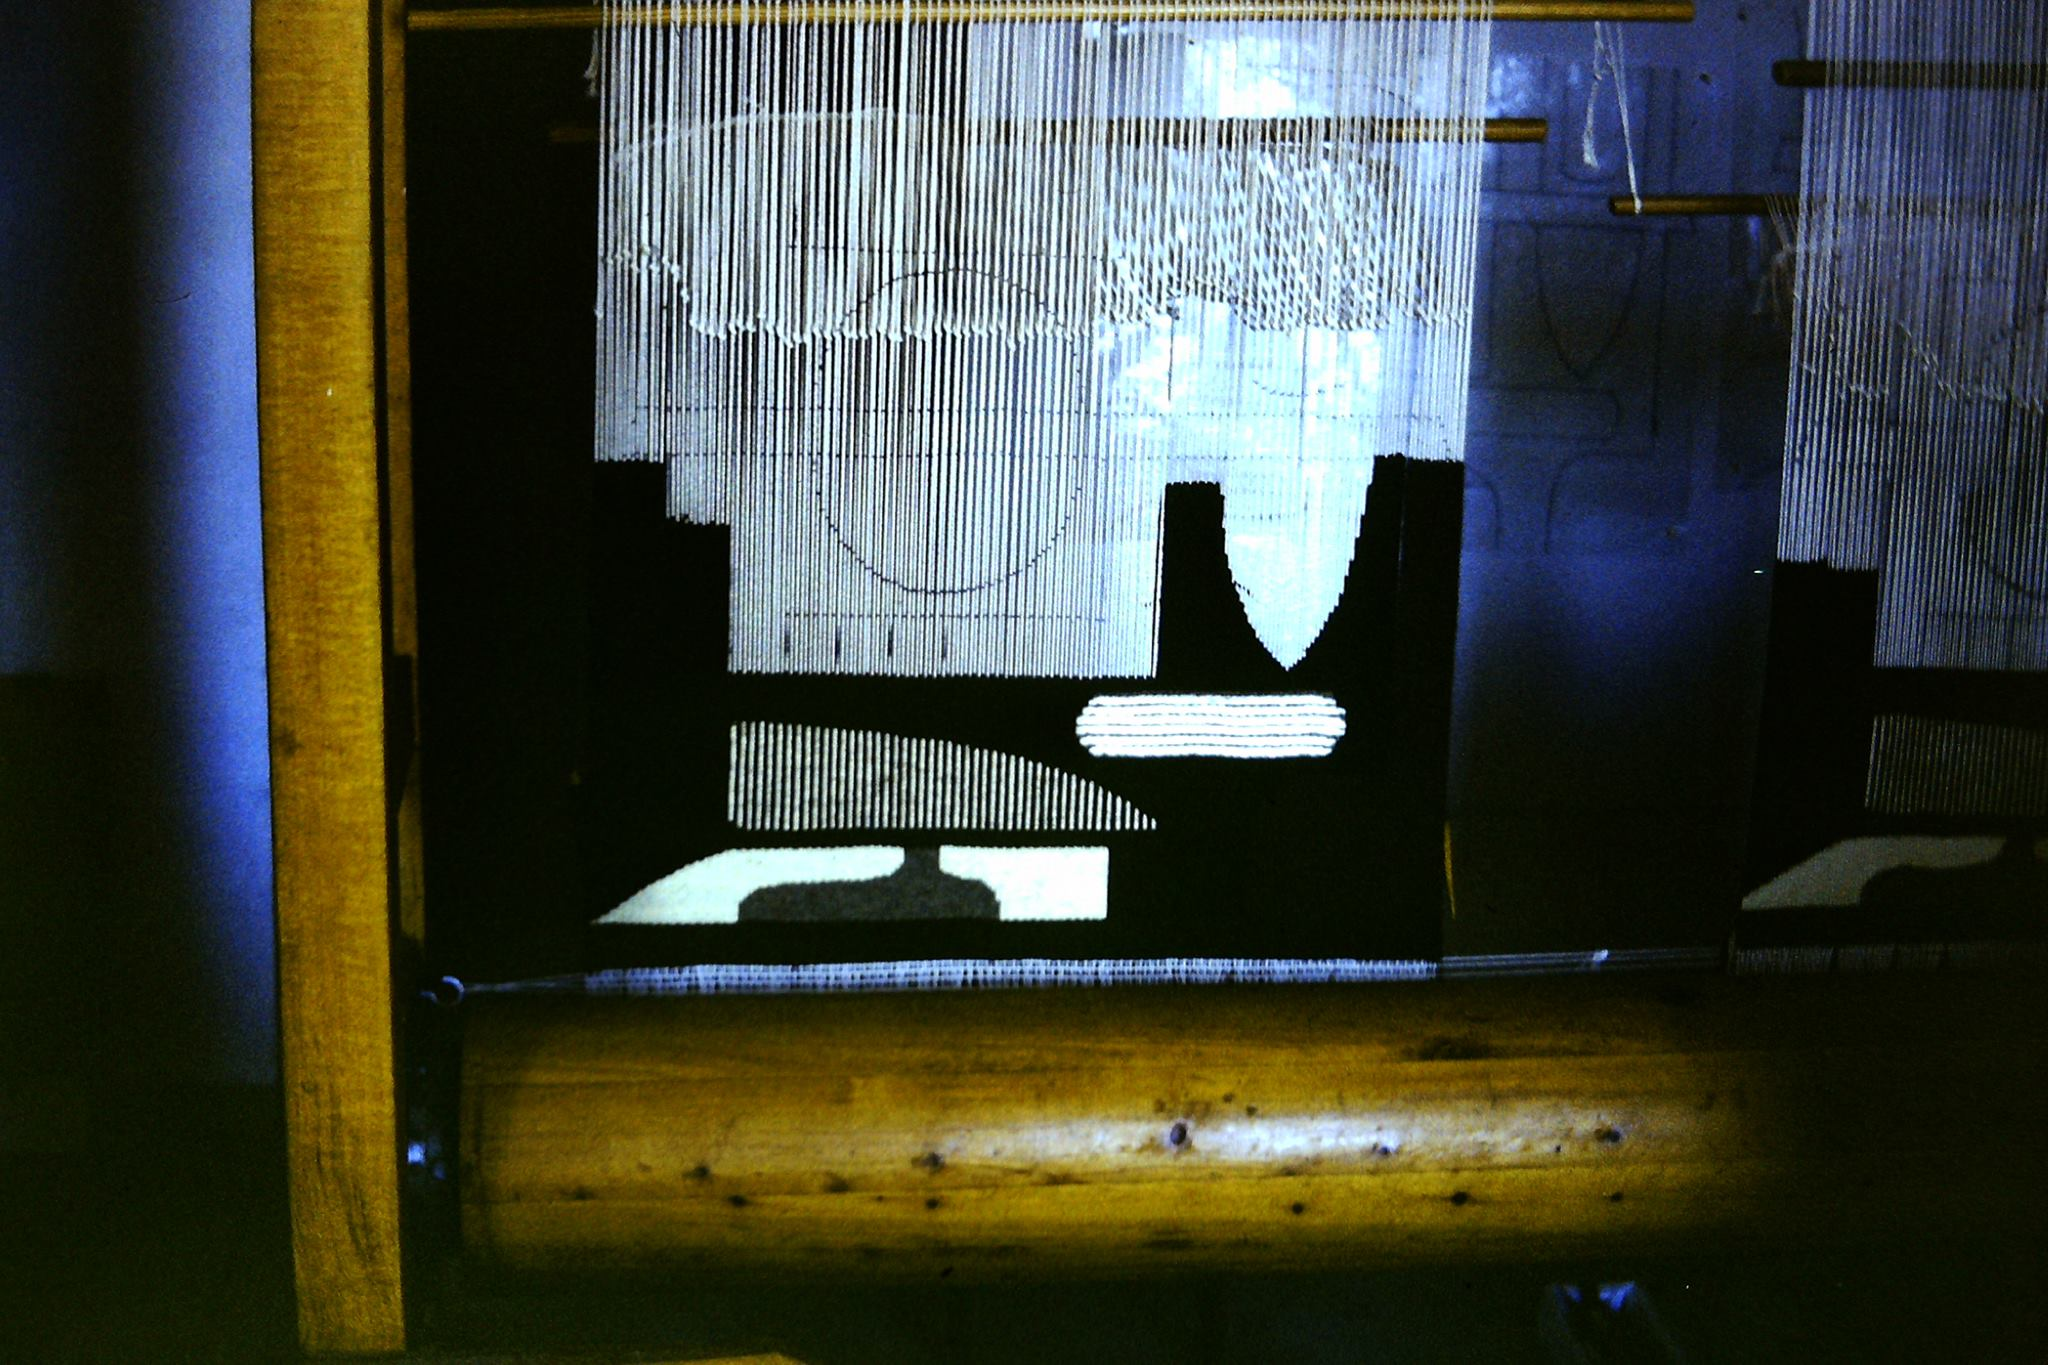 Tapestry weaving, 1980, France, toultouline.com